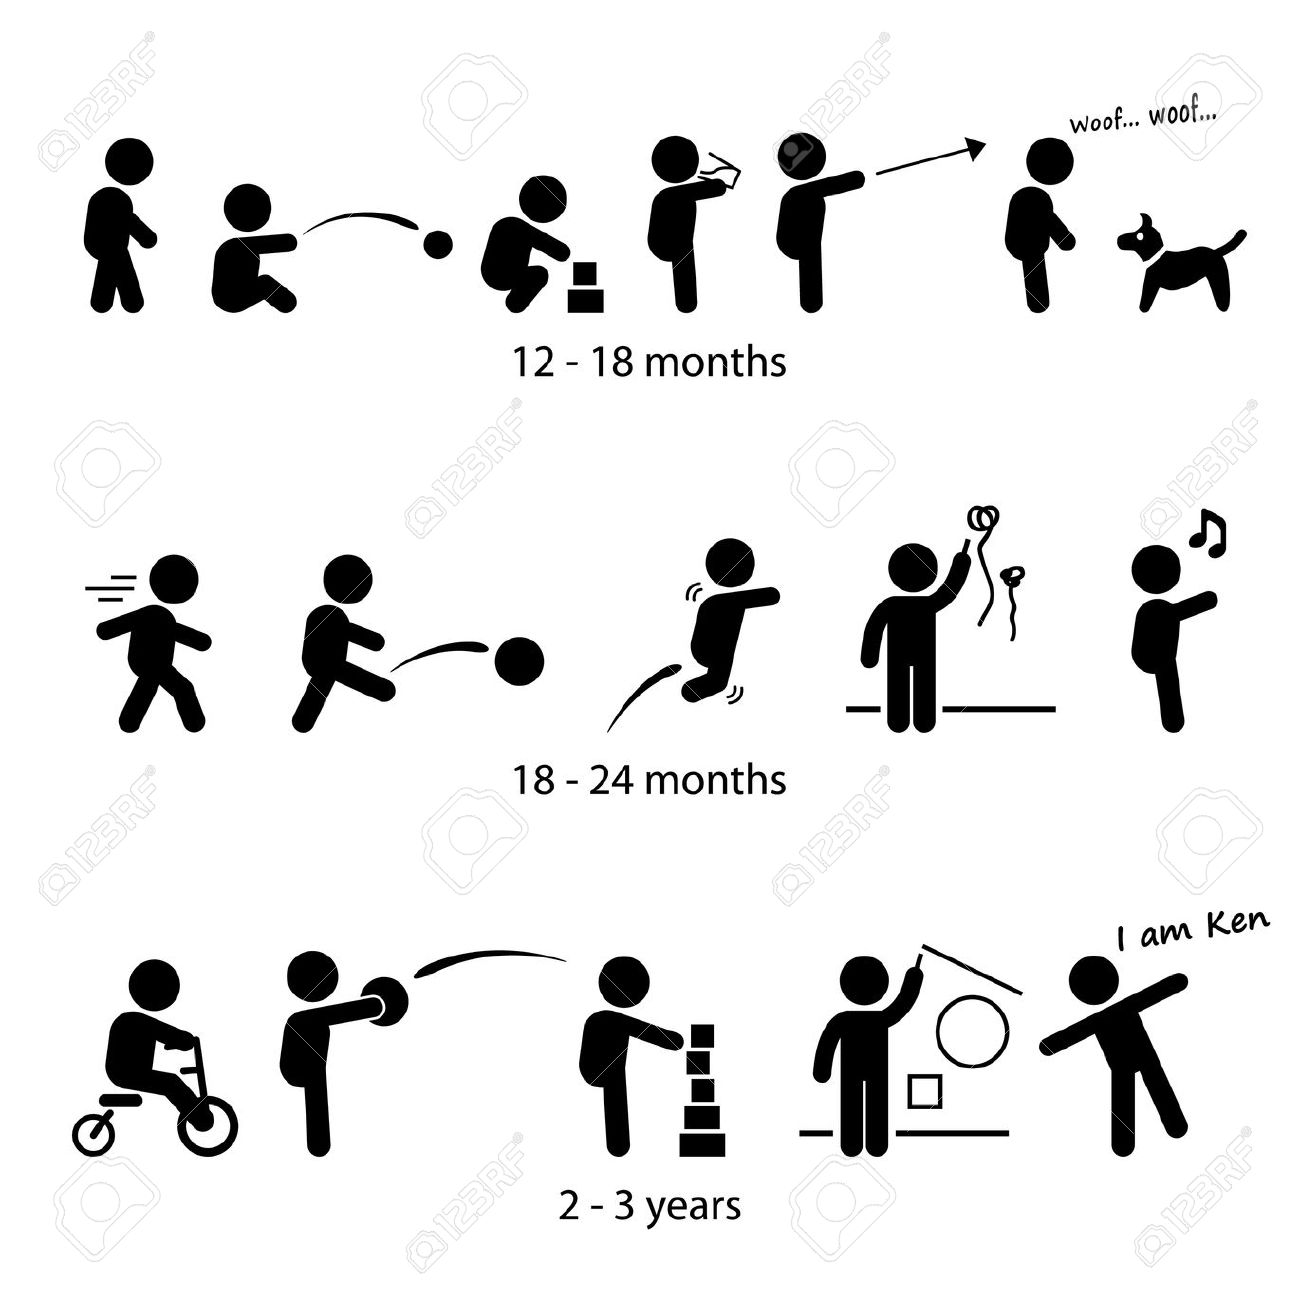 100 year old stick people clipart.